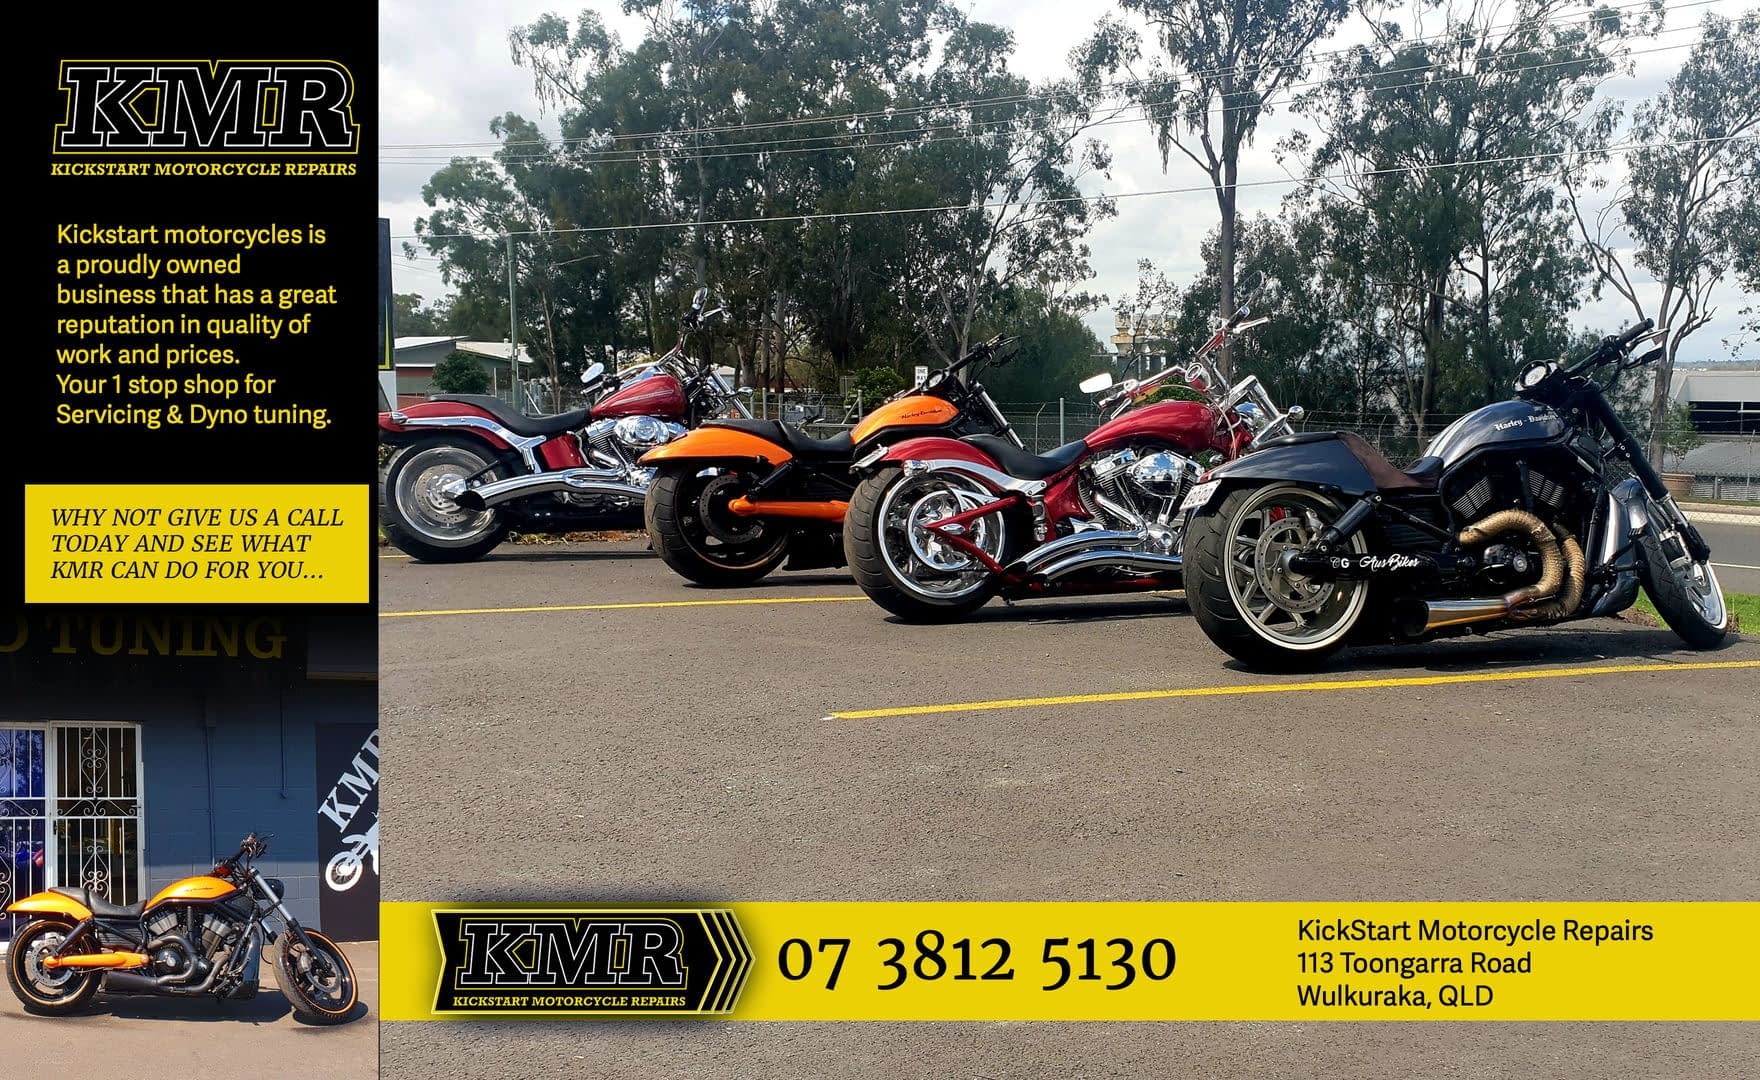 KMR Kickstart Motorcycle Repairs